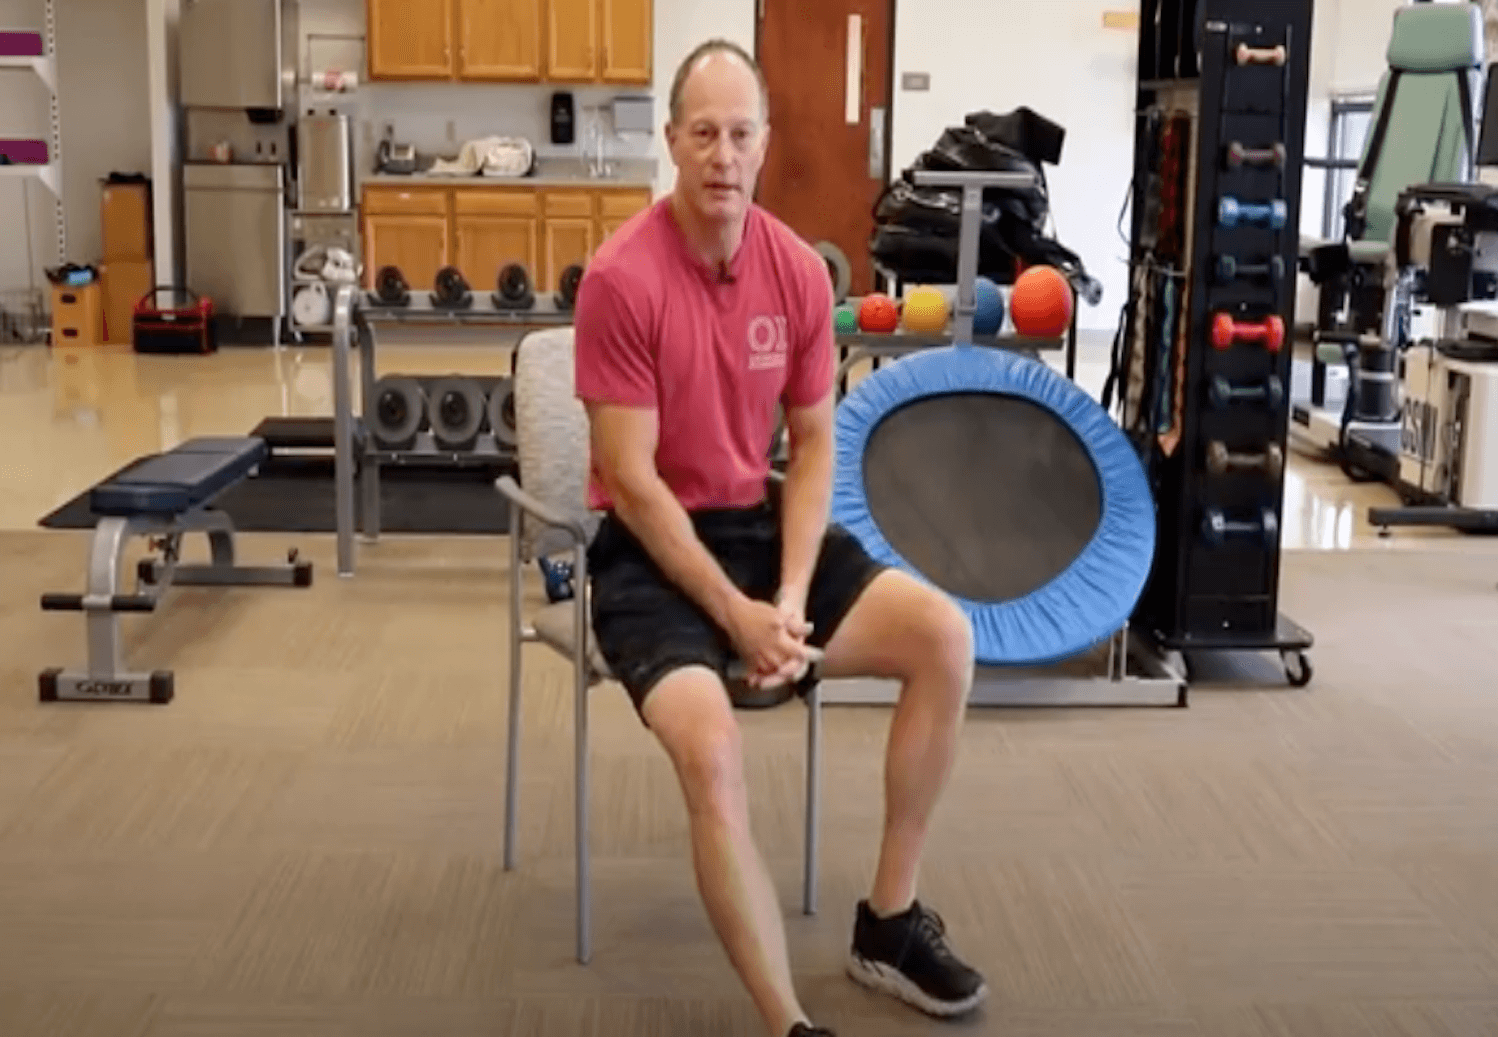 Early pre-surgery knee exercises